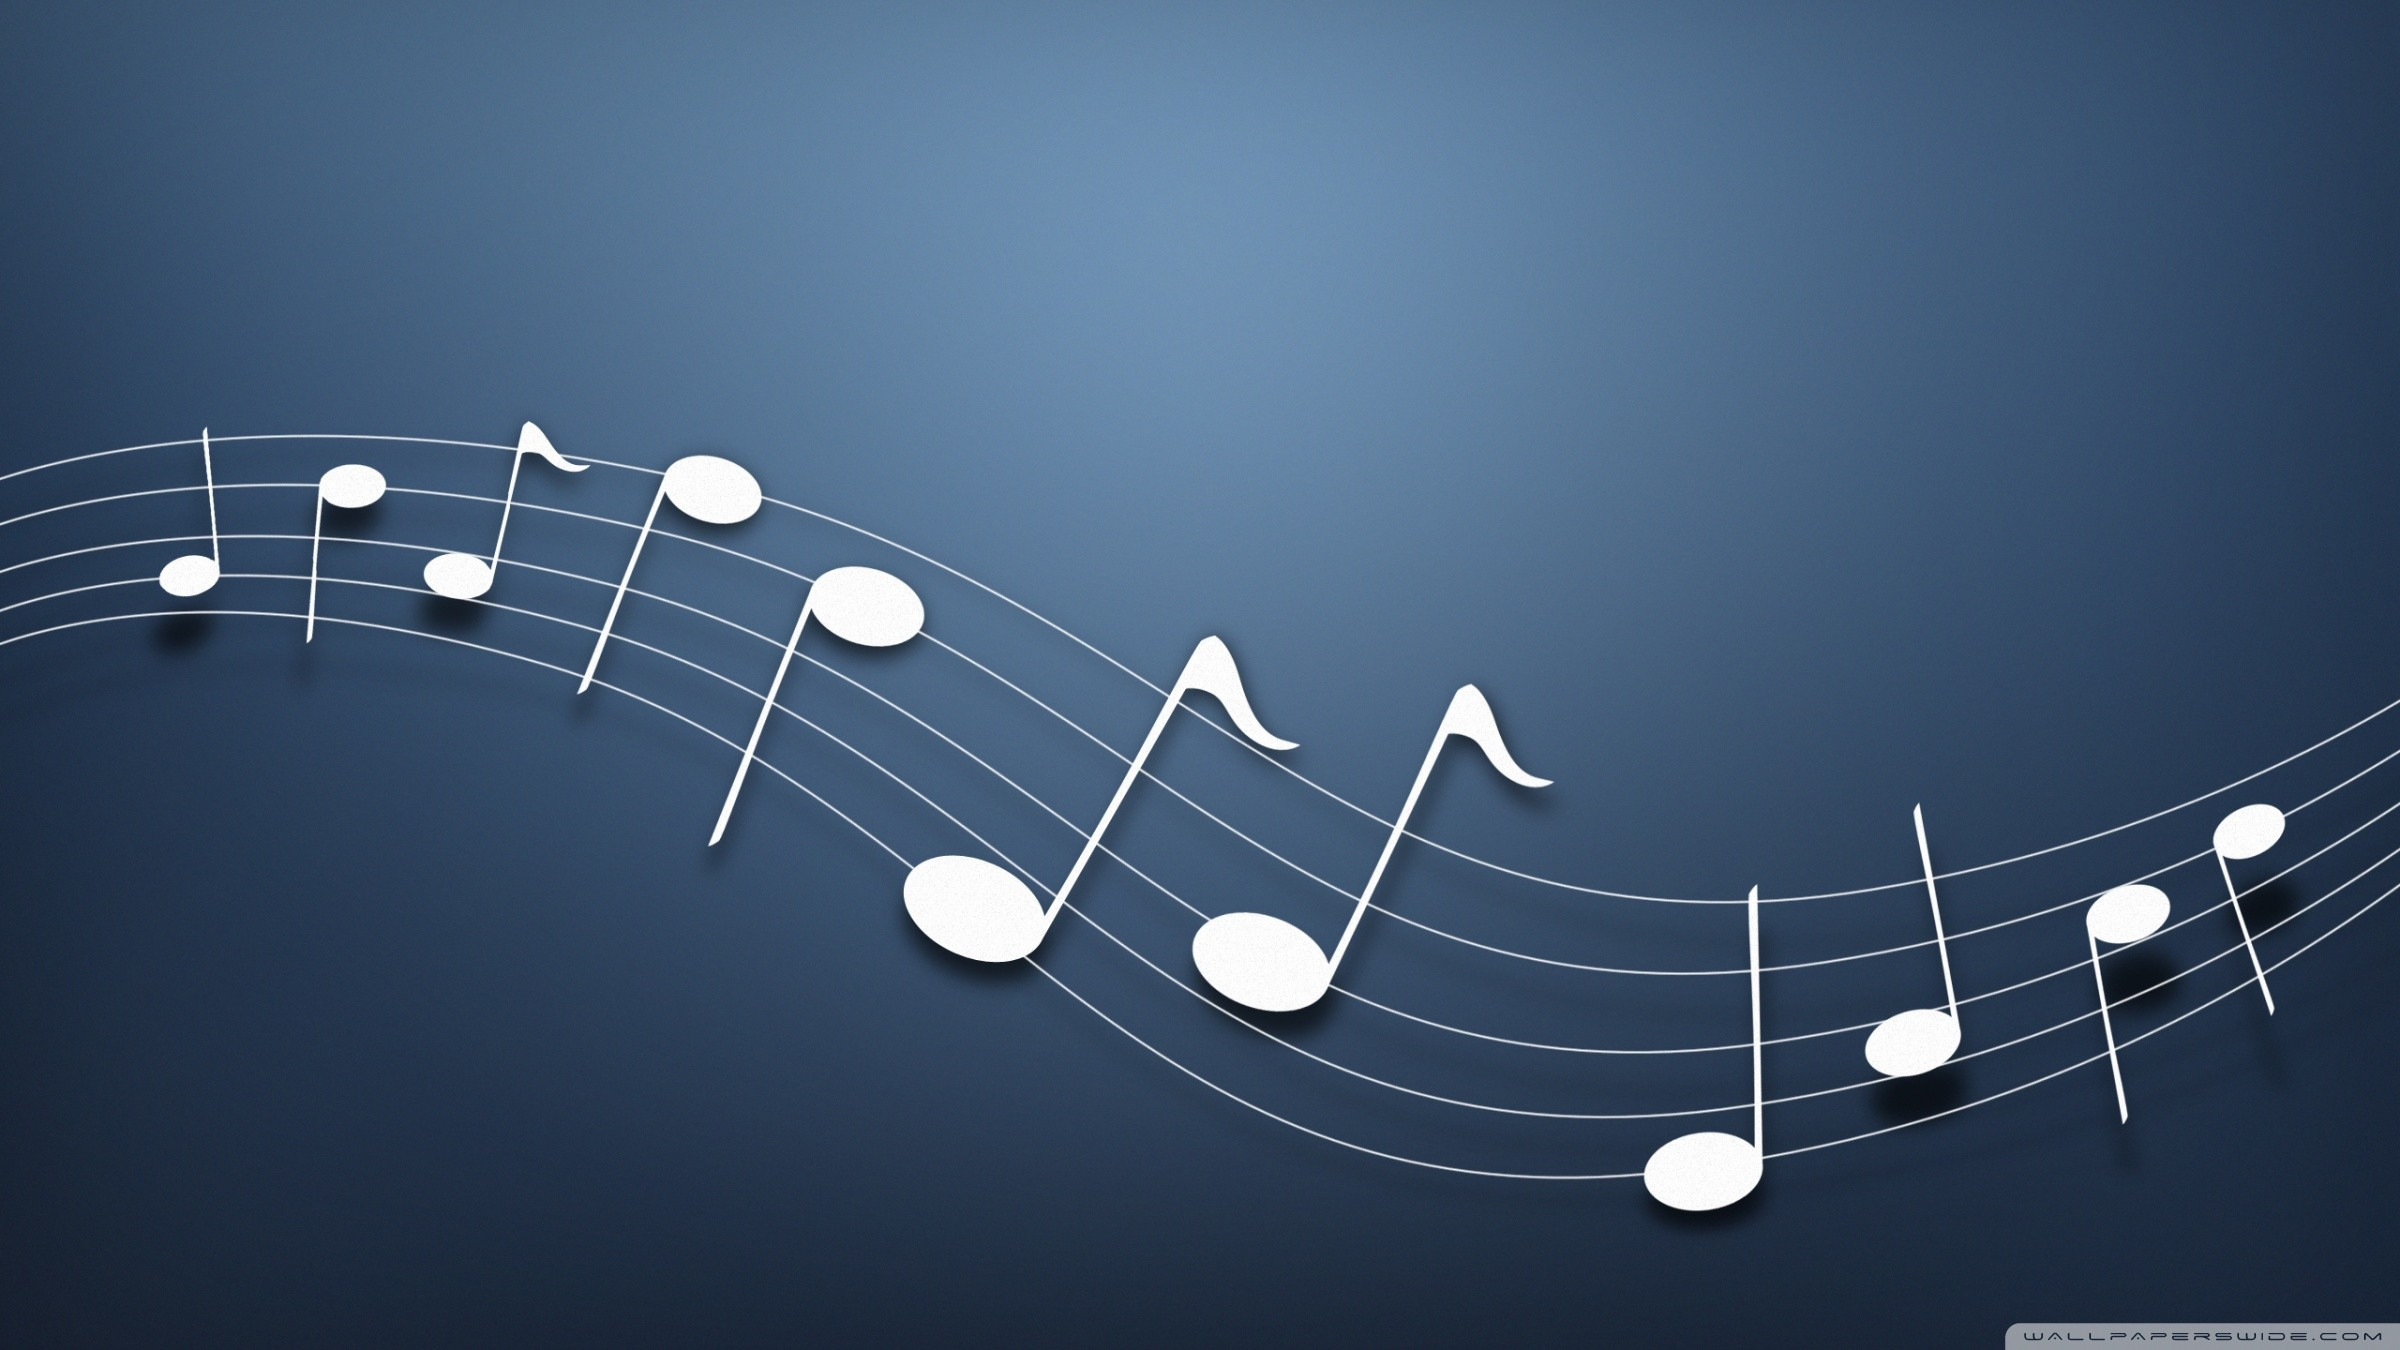 Music Note Wallpapers Wallpapertag